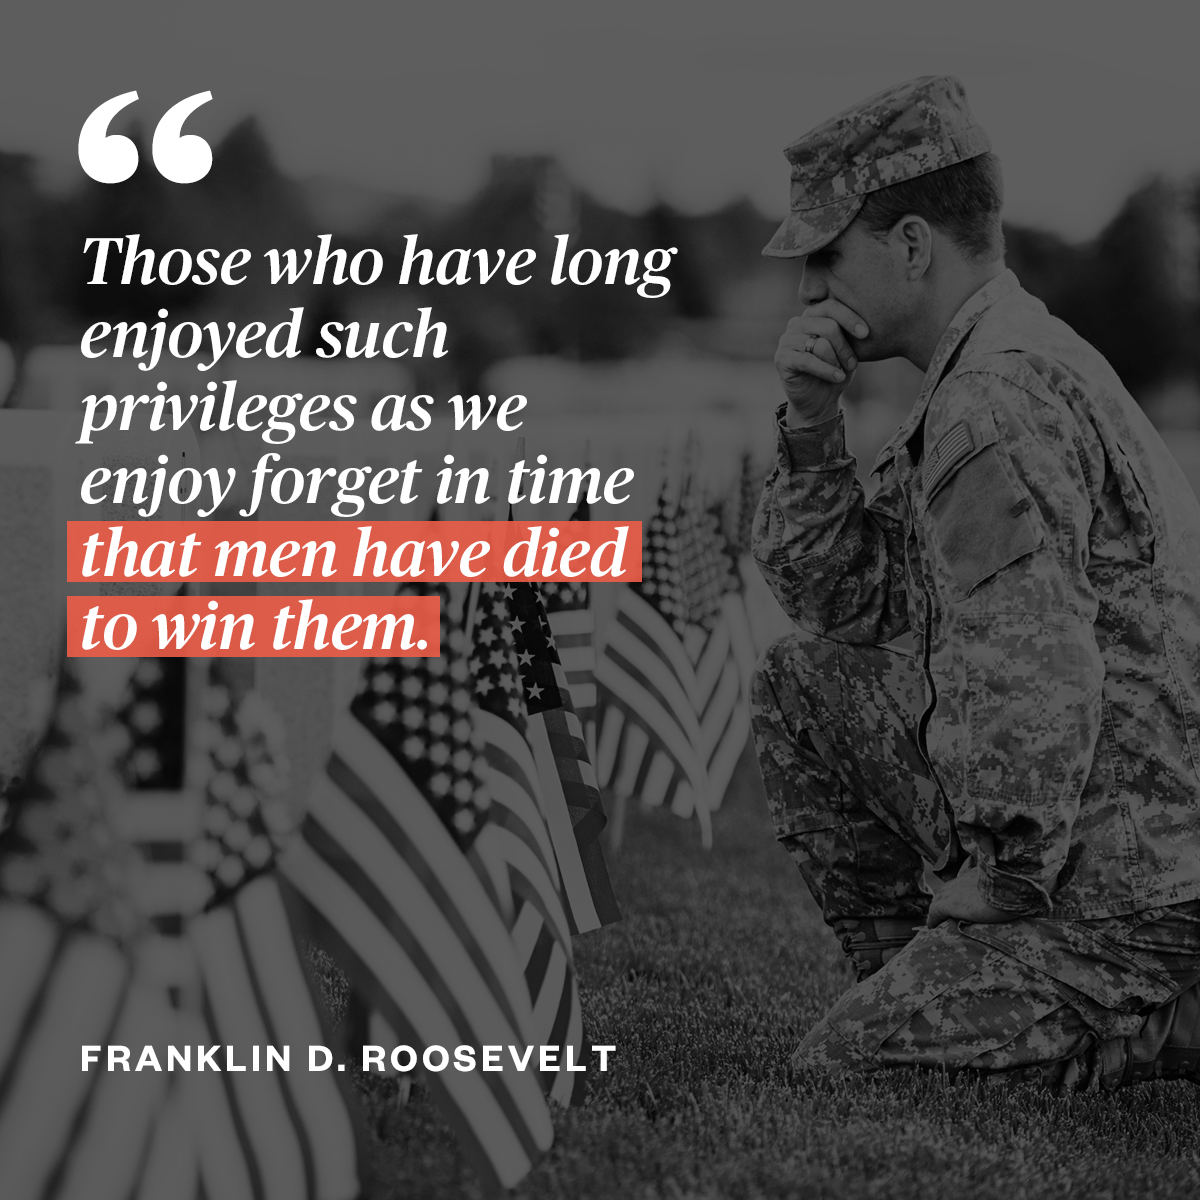 Today and every day, we remember all of those who gave their lives to serve our country. #MemorialDay